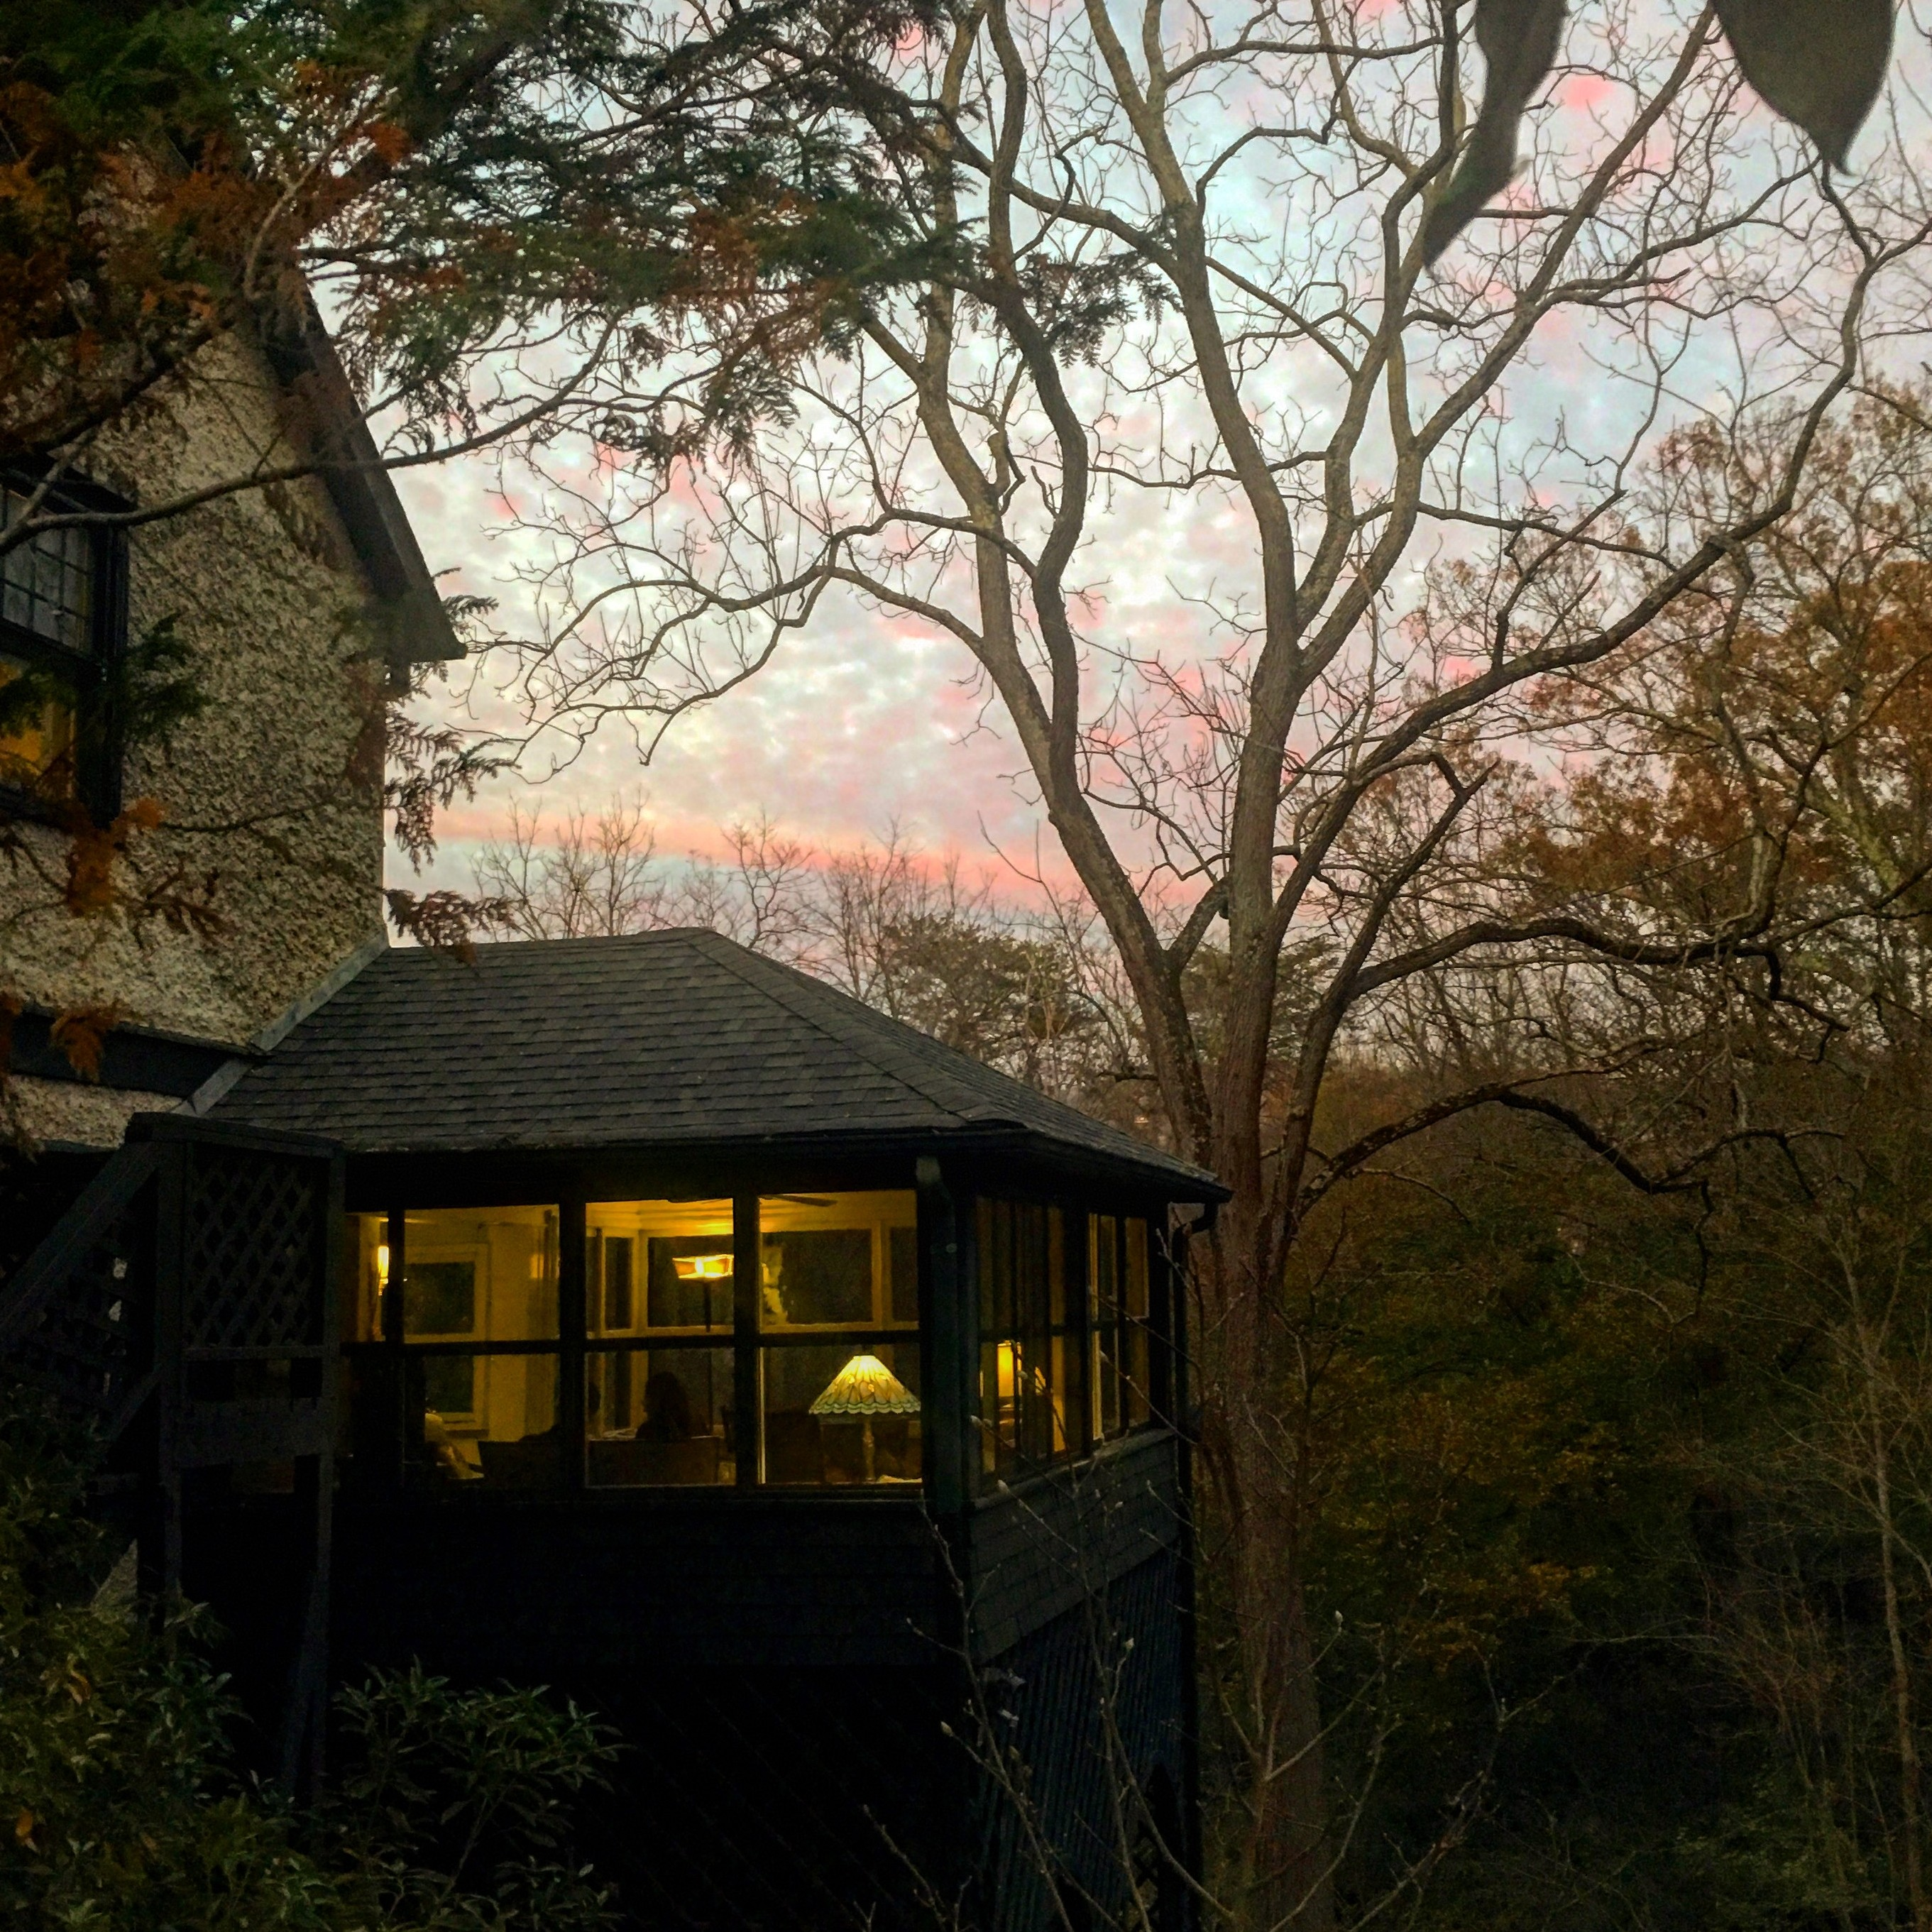 sunset view of Pinecrest sunporch